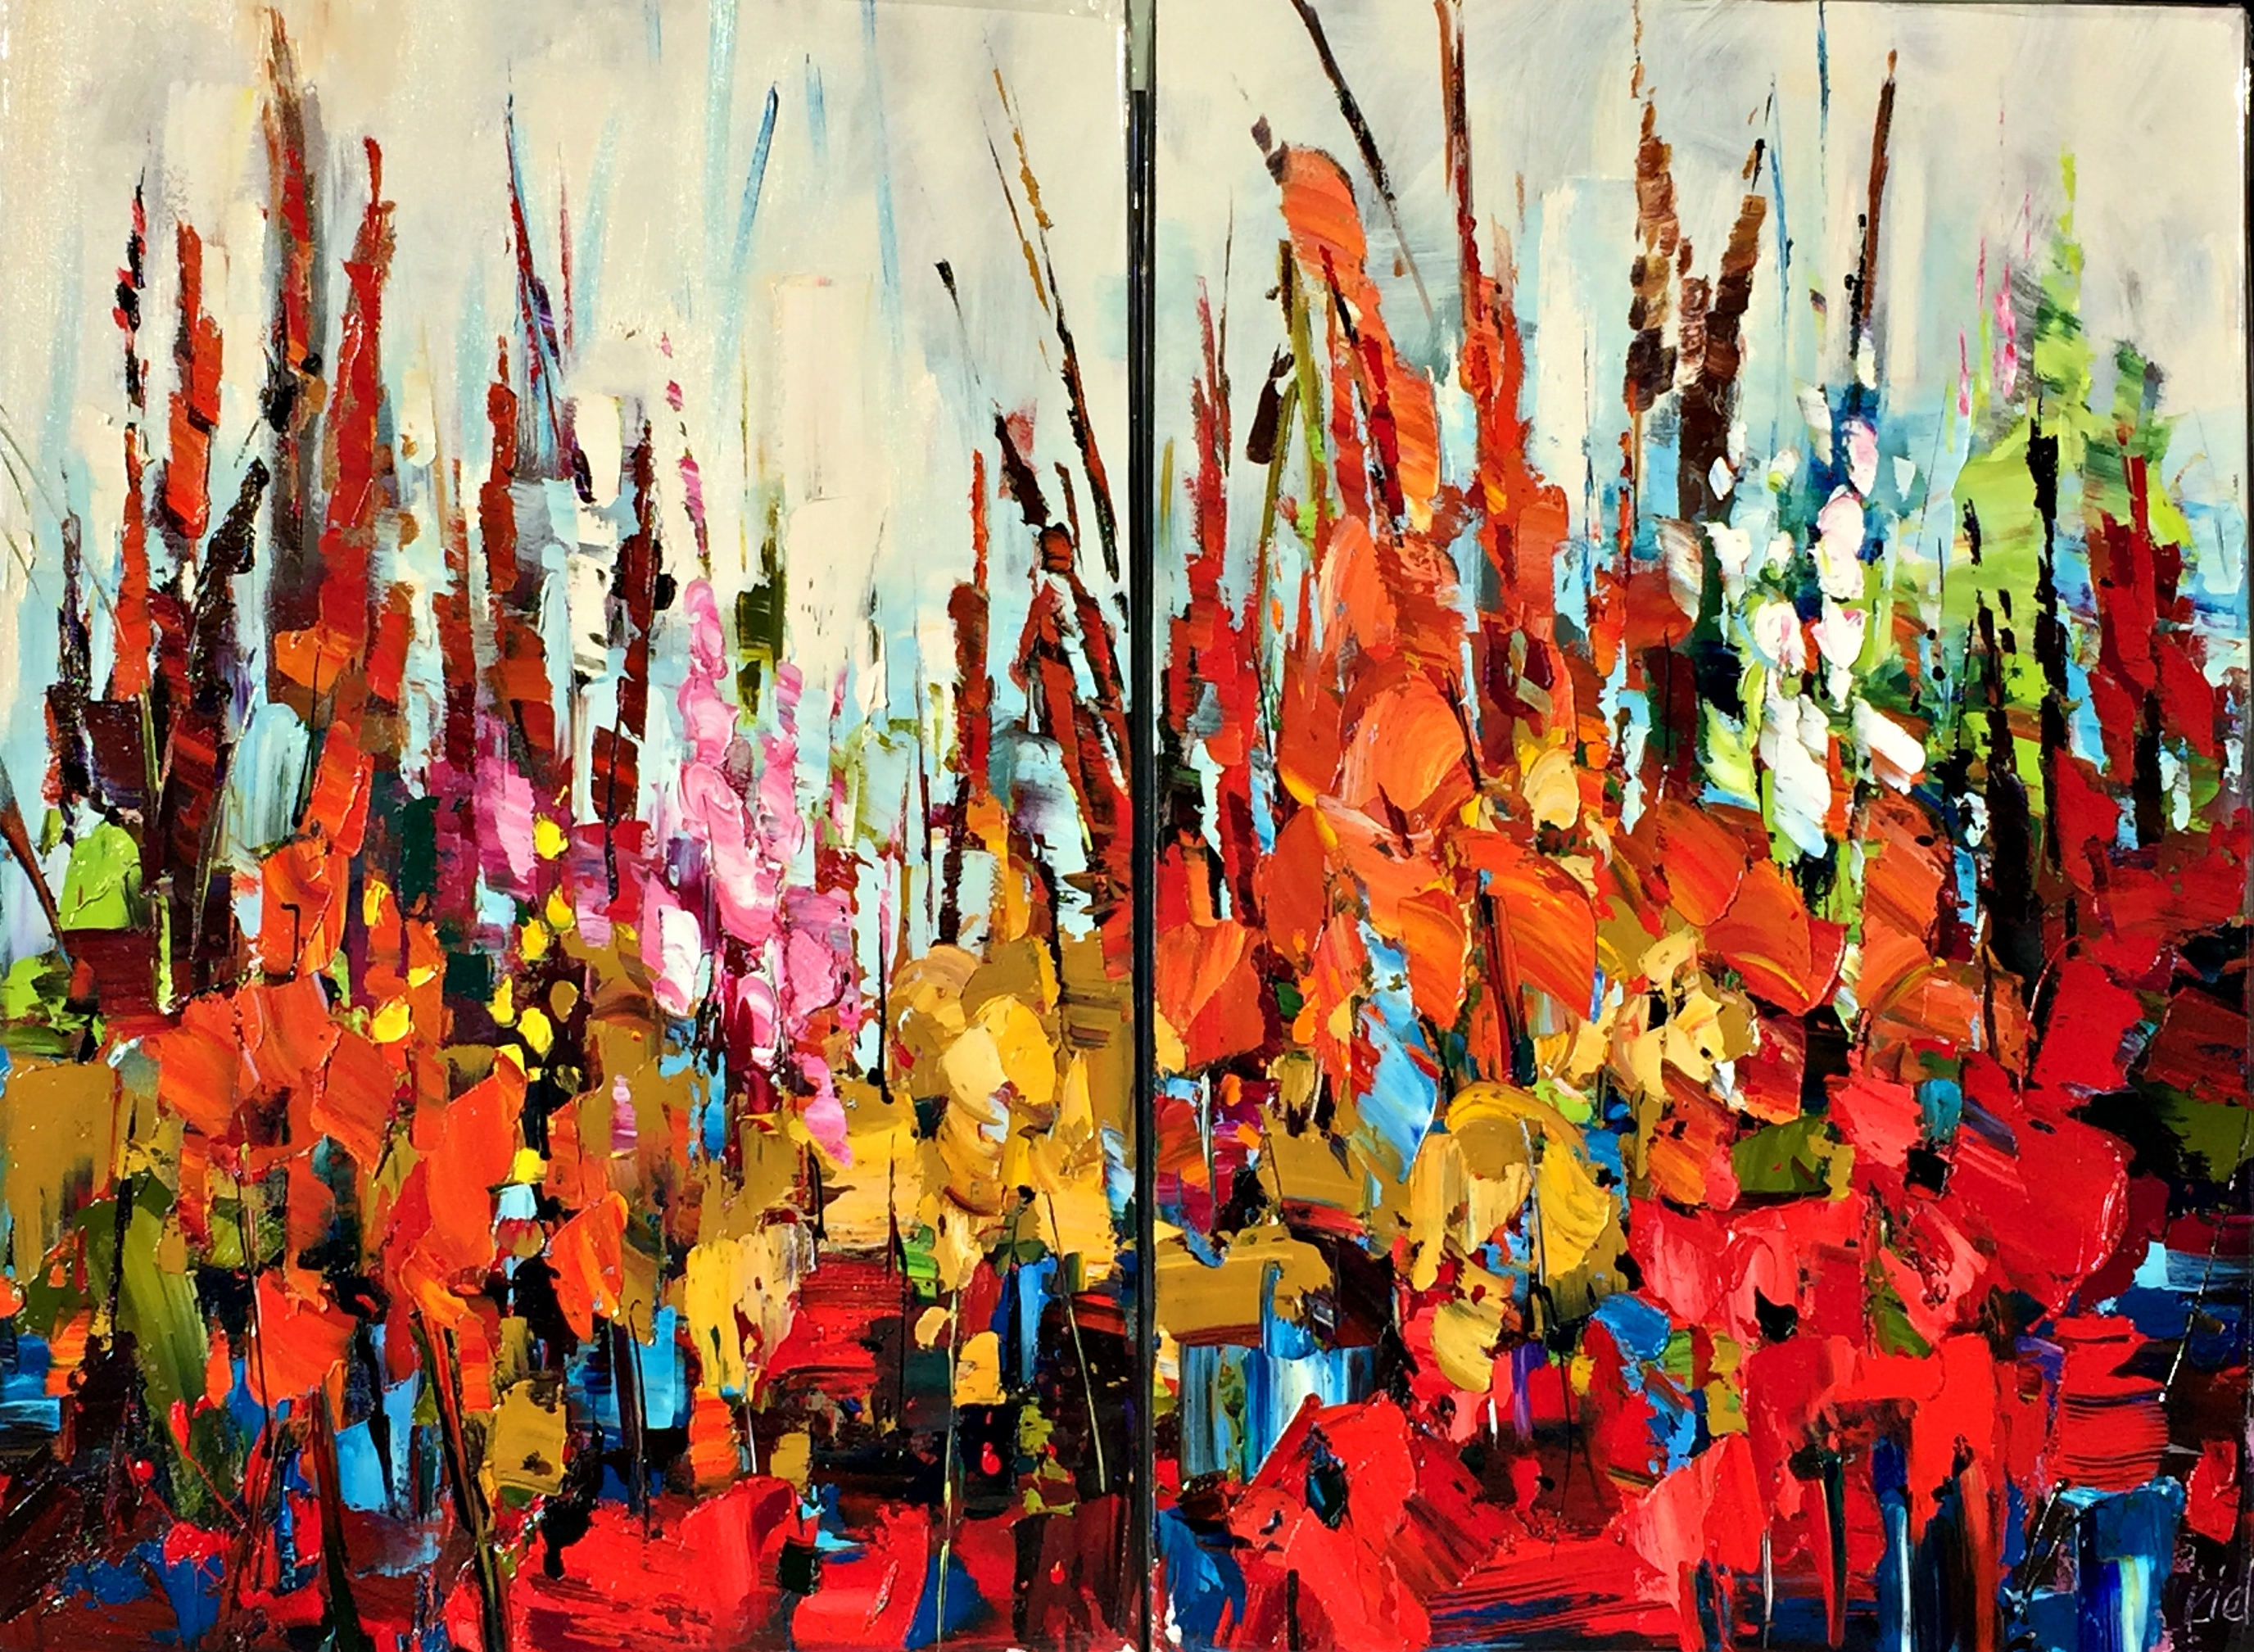 Having Their Fun, oil painting by Kimberly Kiel | Effusion Art Gallery + Cast Glass Studio, Invermere BC